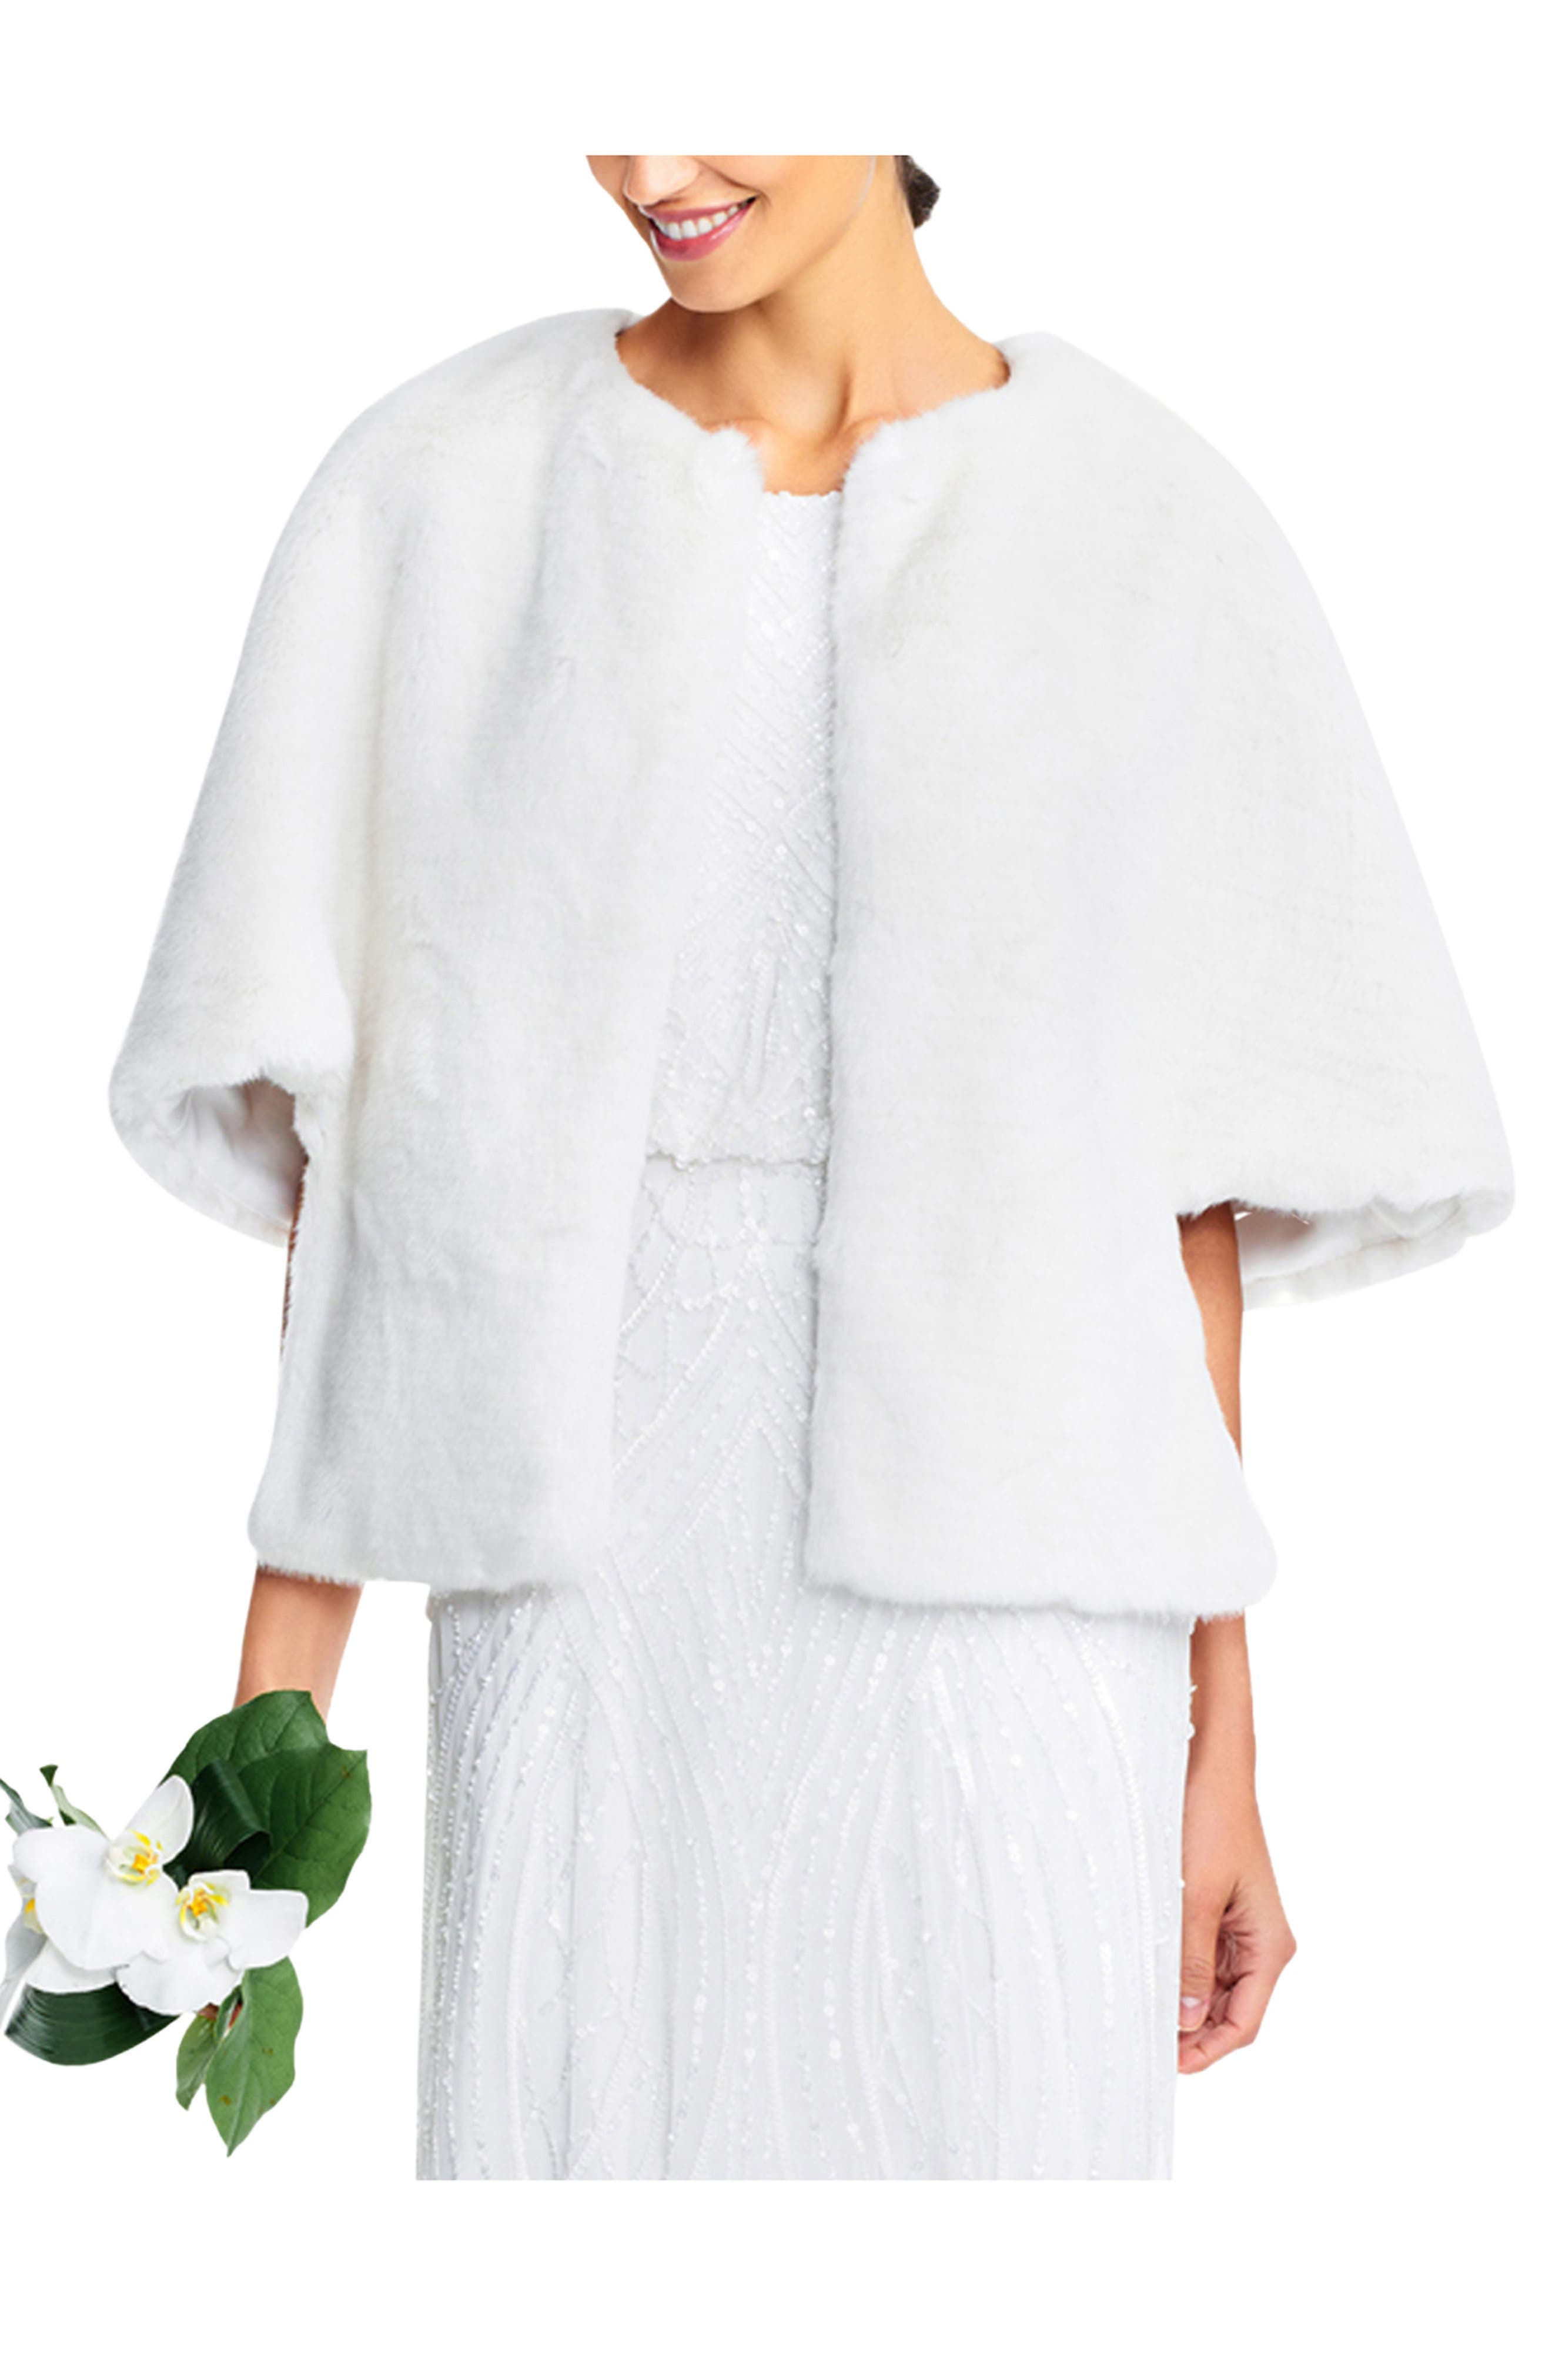 1930s Evening Dresses | Old Hollywood Silver Screen Dresses Womens Adrianna Papell Faux Fur Jacket Size X-Large - White $149.00 AT vintagedancer.com